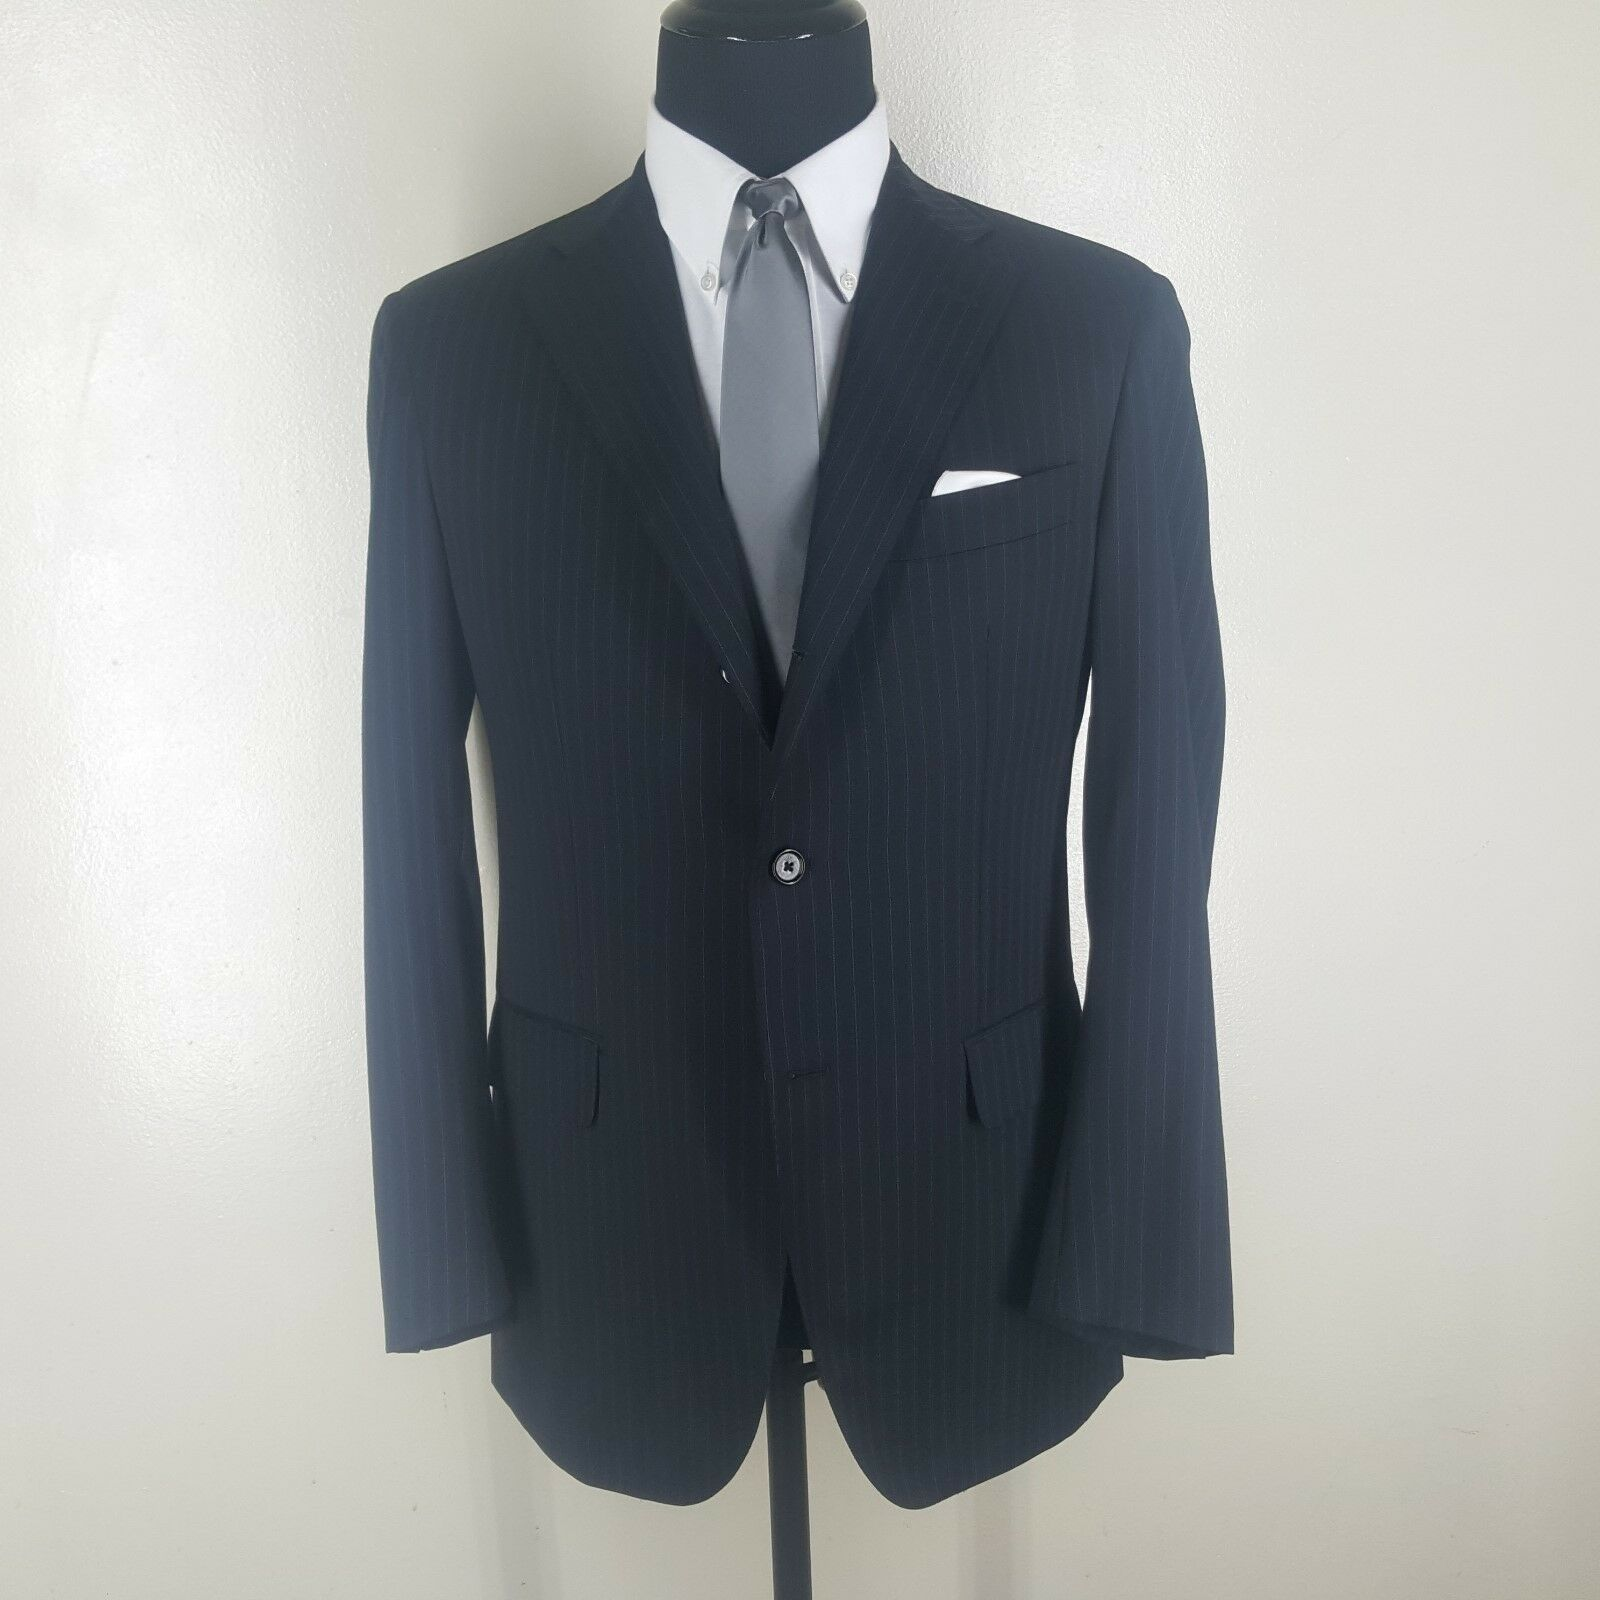 BARNEYS NY bluee Striped Suit 3 Btn Side Vents Flat Front Pants  40 R-Fit 42 Reg